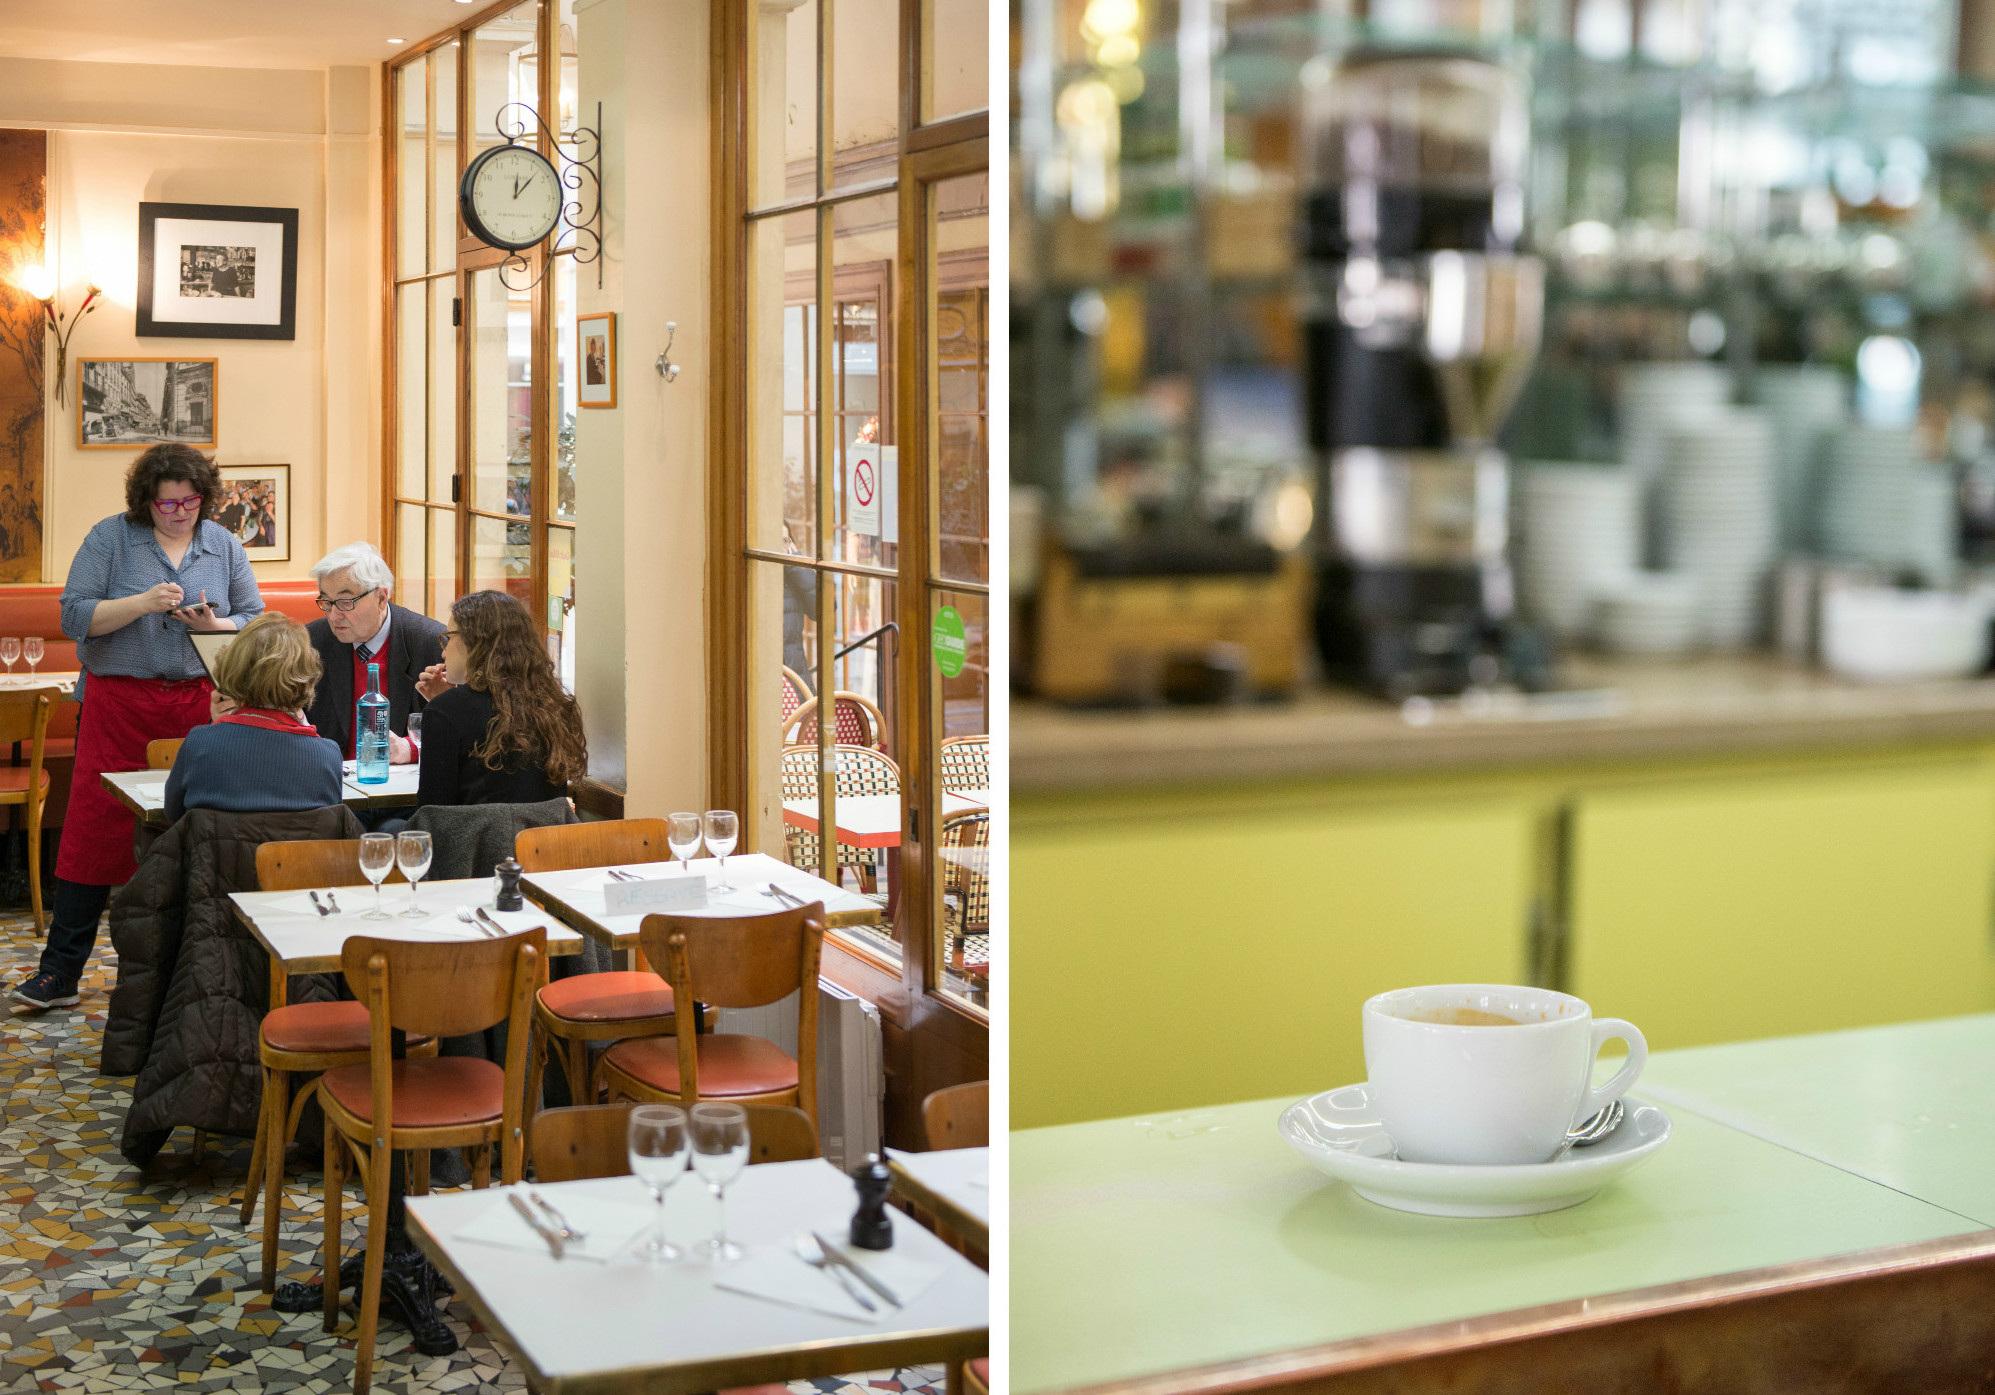 Le Bougainville: Unfussy French Cooking near Place de la Victoire in Paris